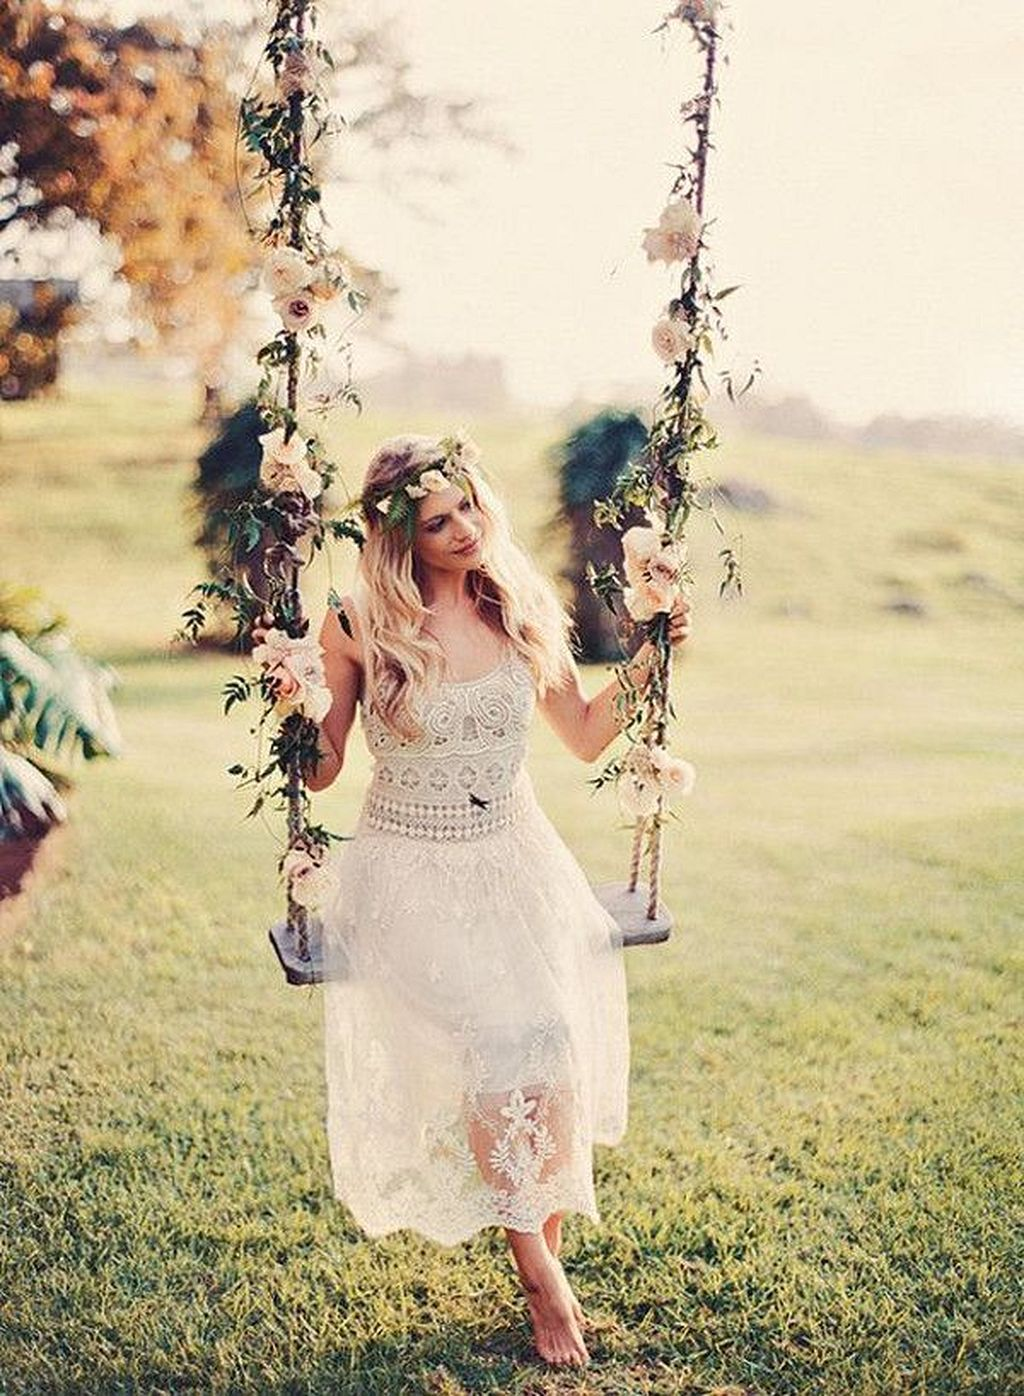 boho wedding decorations ideas boho wedding decorations